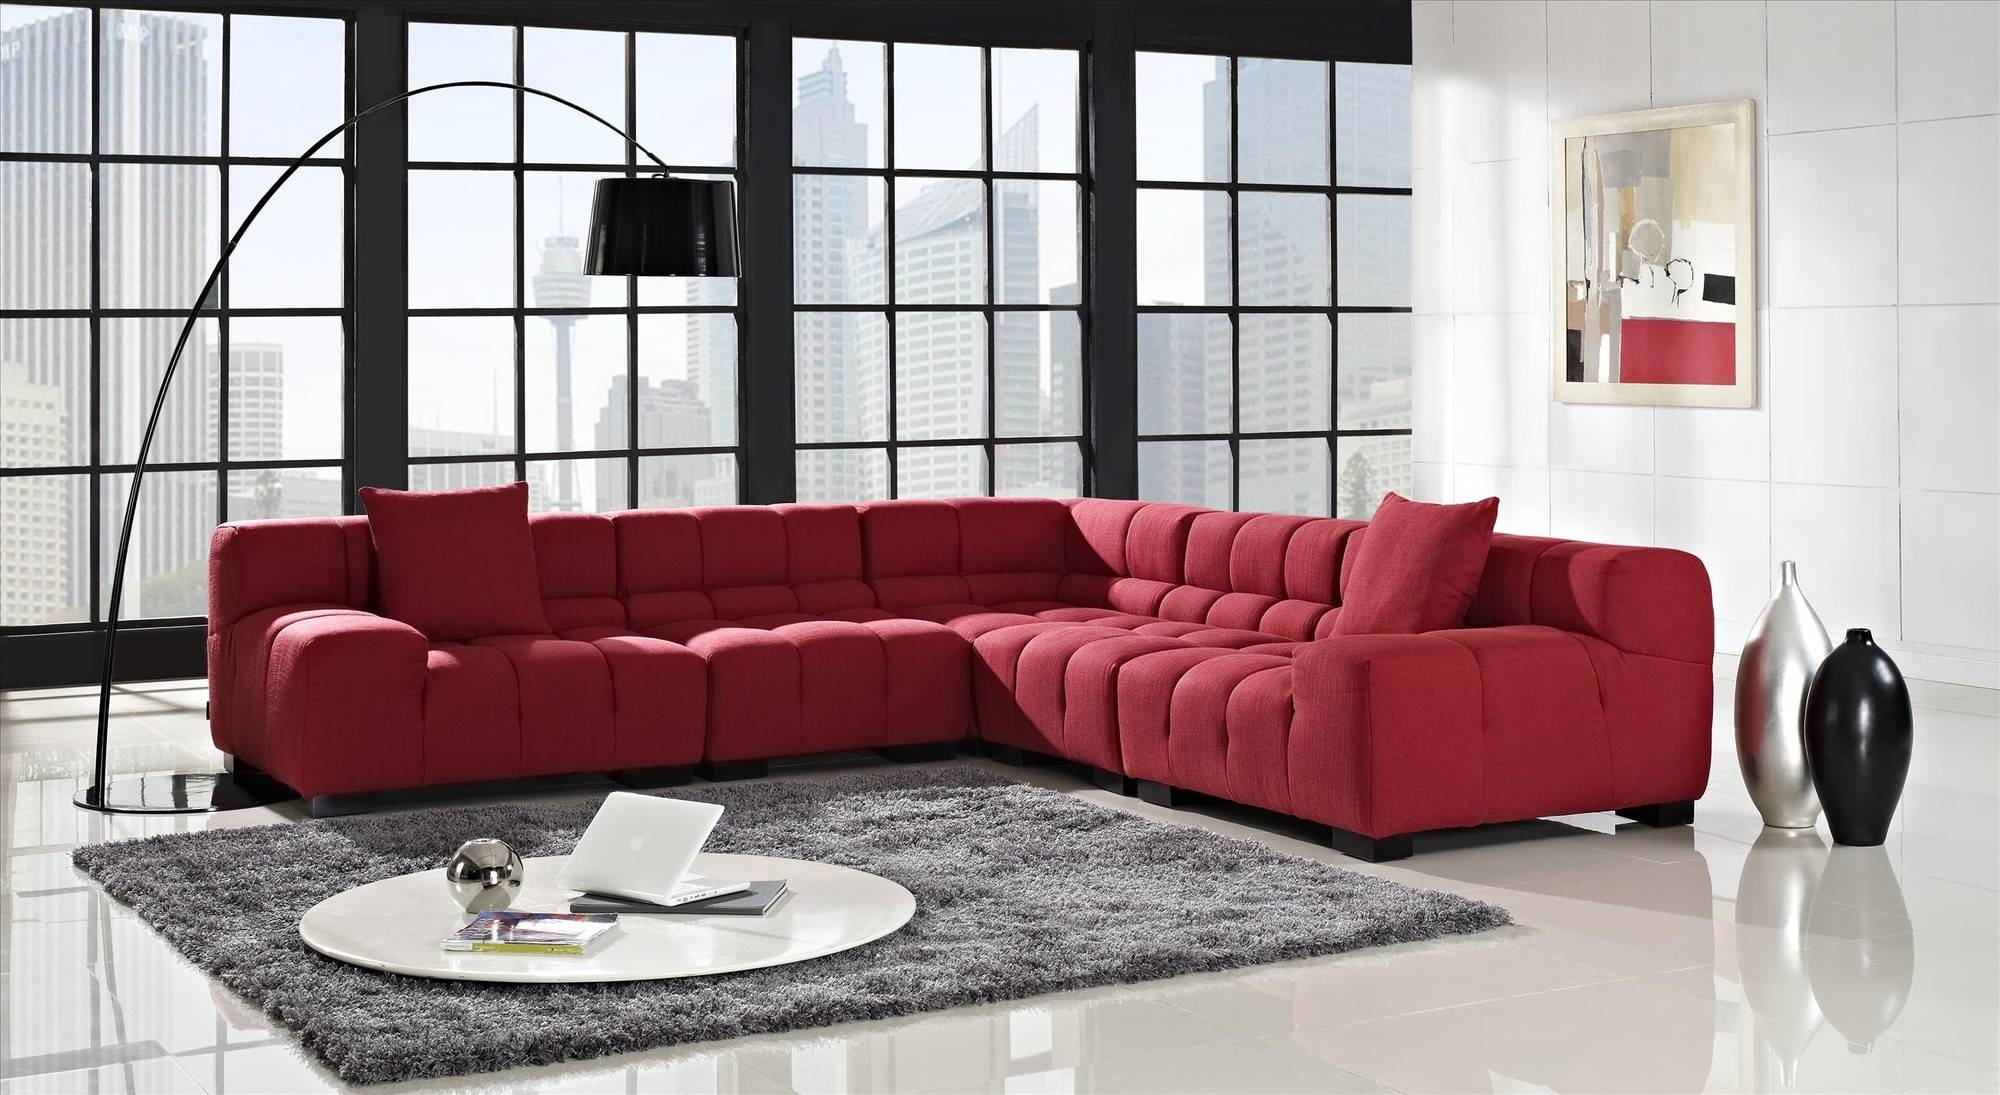 How To Choose Modern Sectional Sofas For Your Home - Midcityeast within Modern Sectional Sofas for Small Spaces (Image 10 of 25)